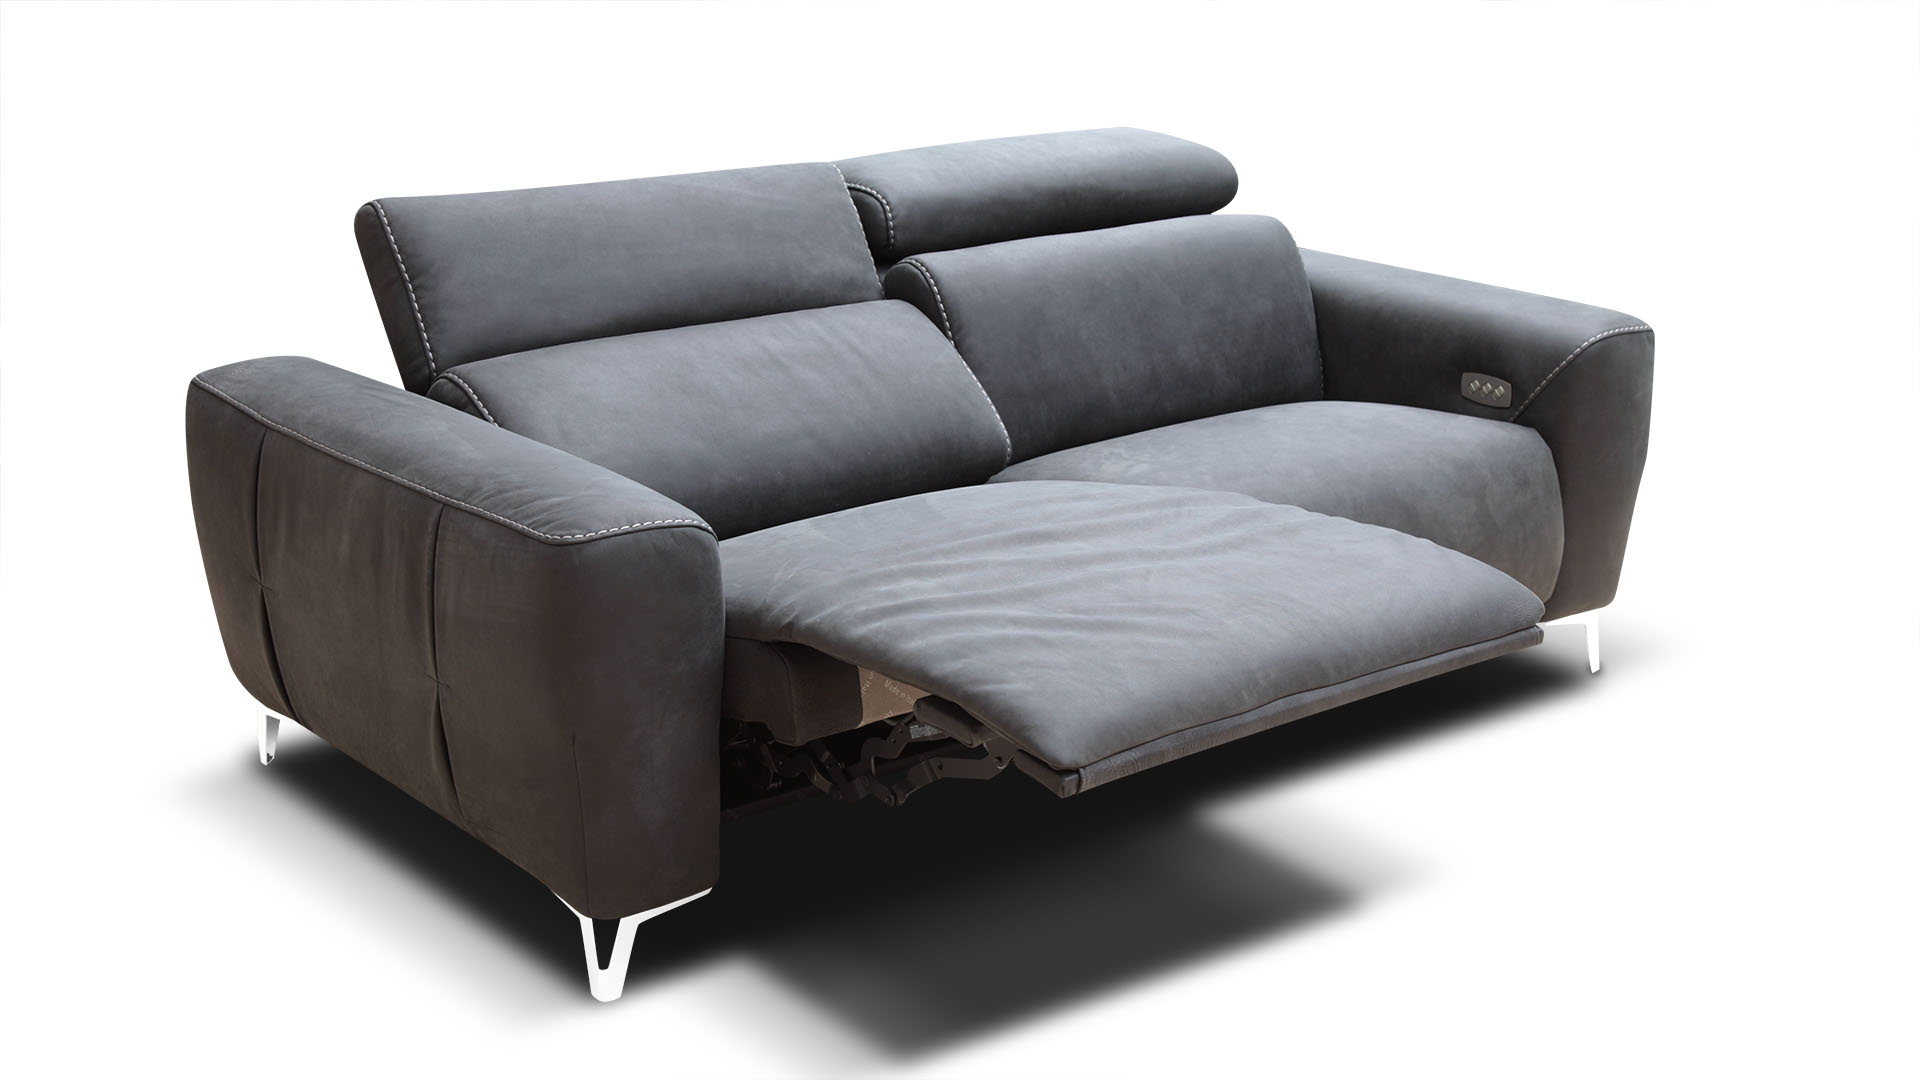 Bracci Zeus power sofa